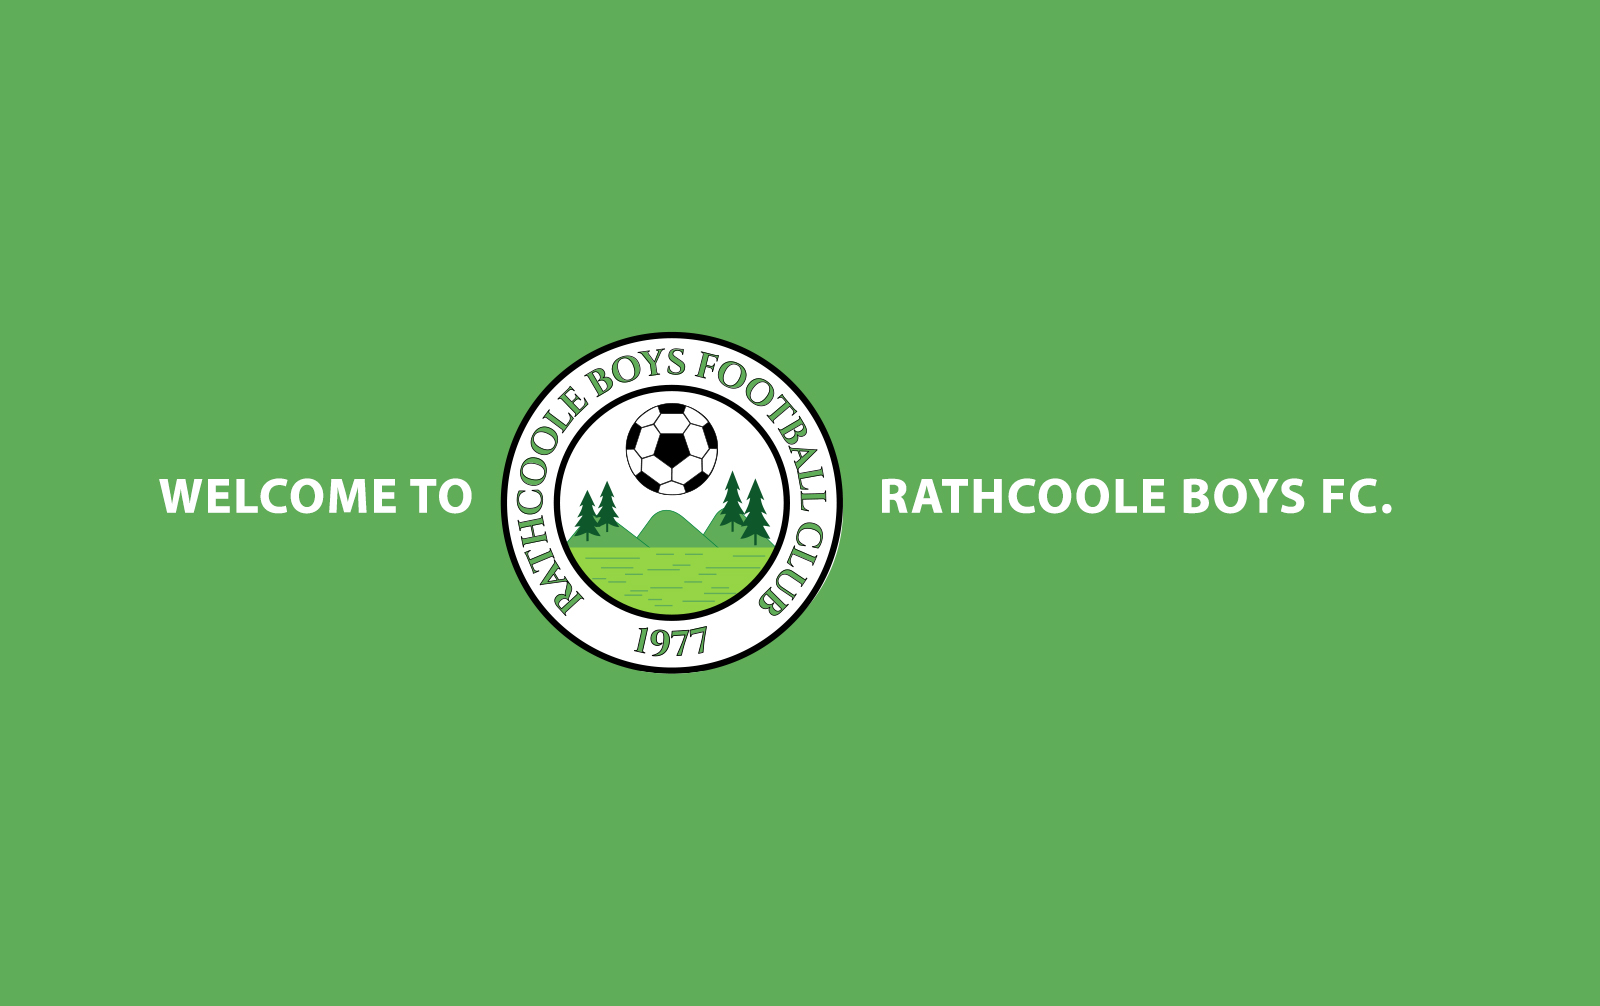 Rathcoole Boys FC Welcome